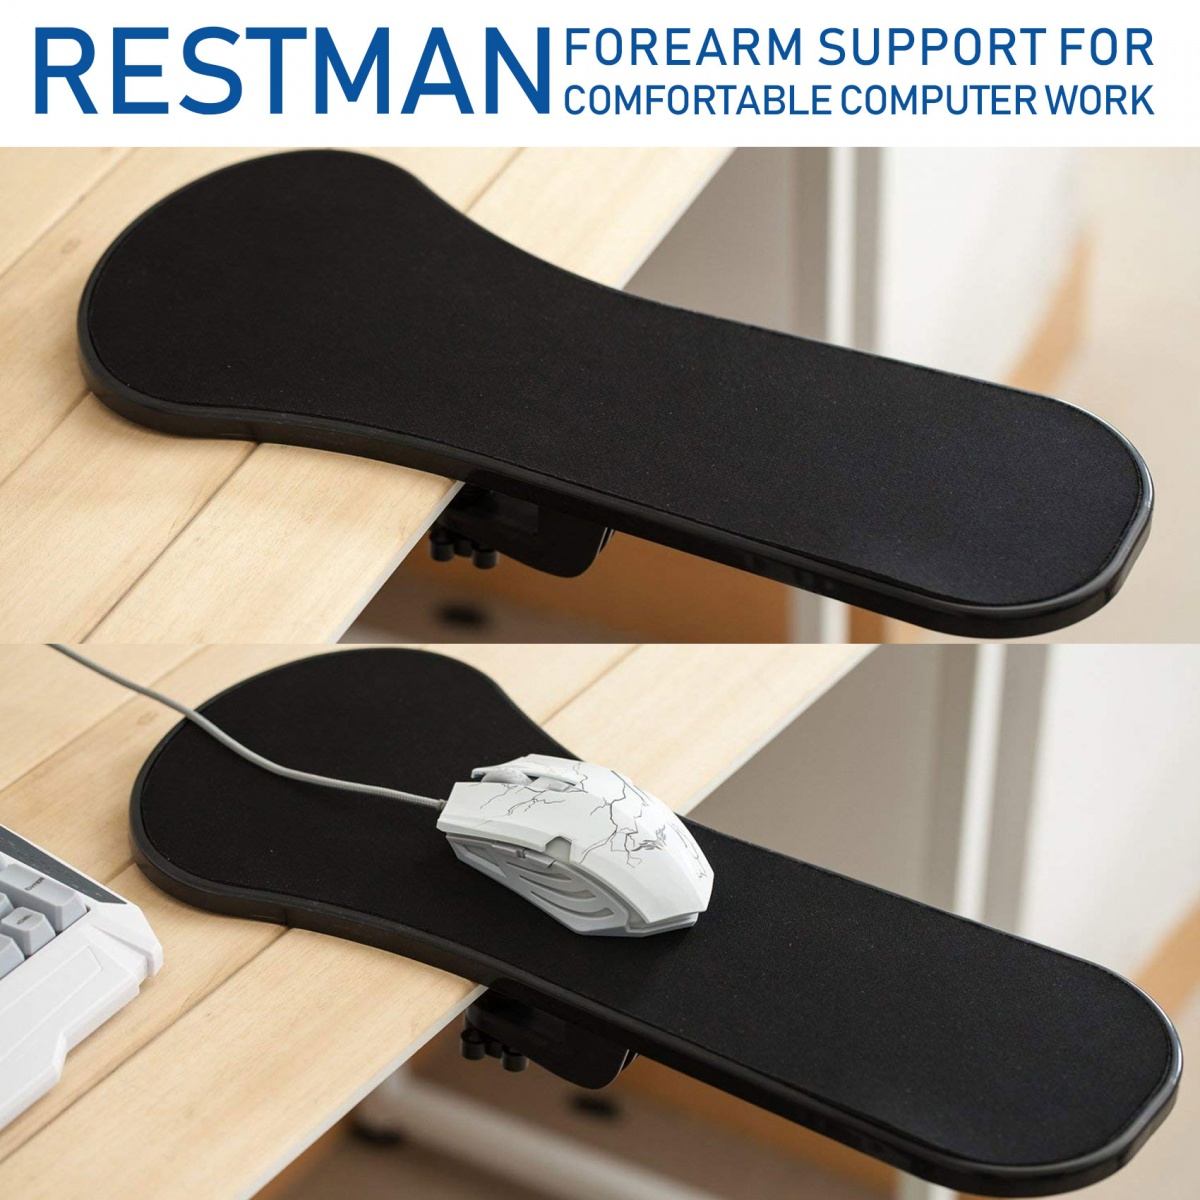 Restman Arm Rest Forearm Support - Black